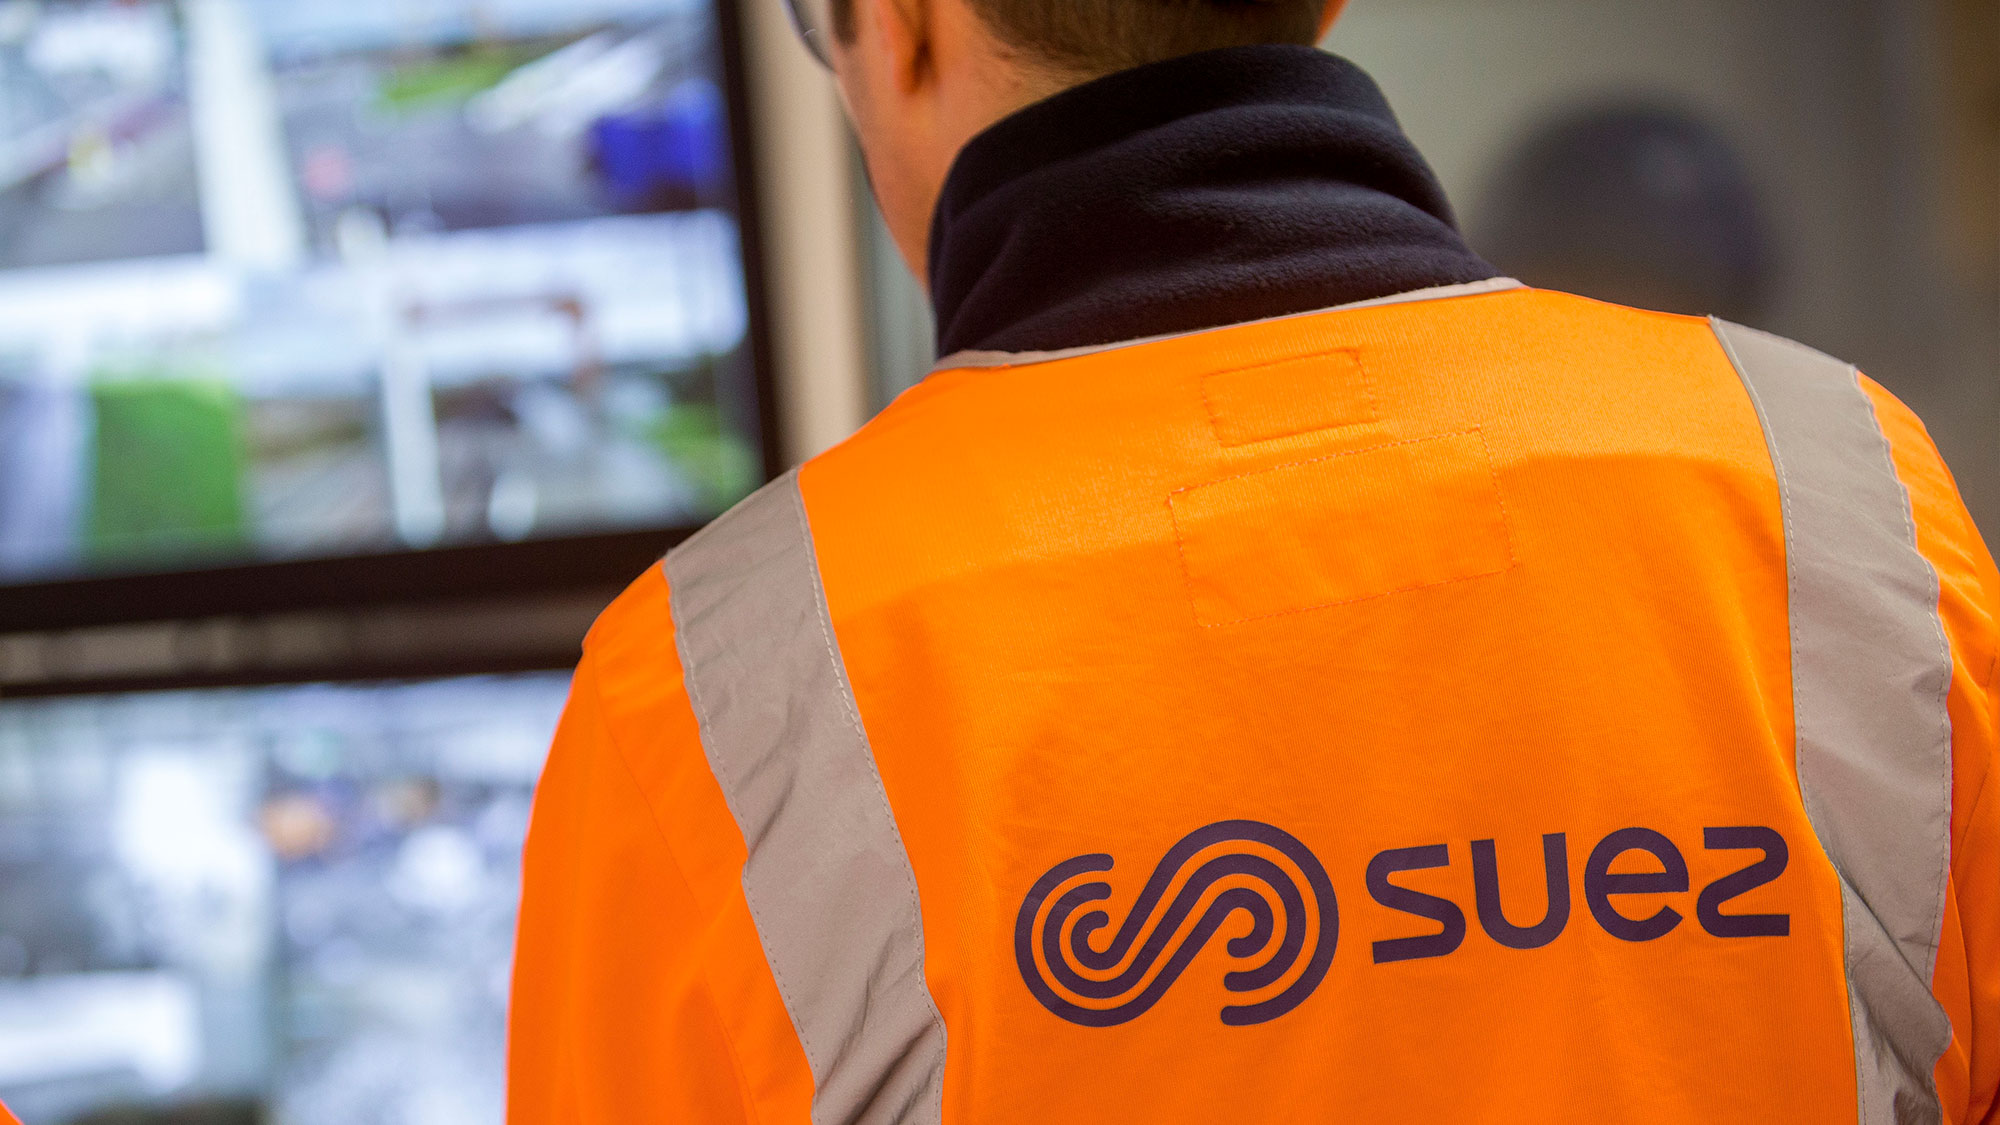 SUEZ employee and monitor